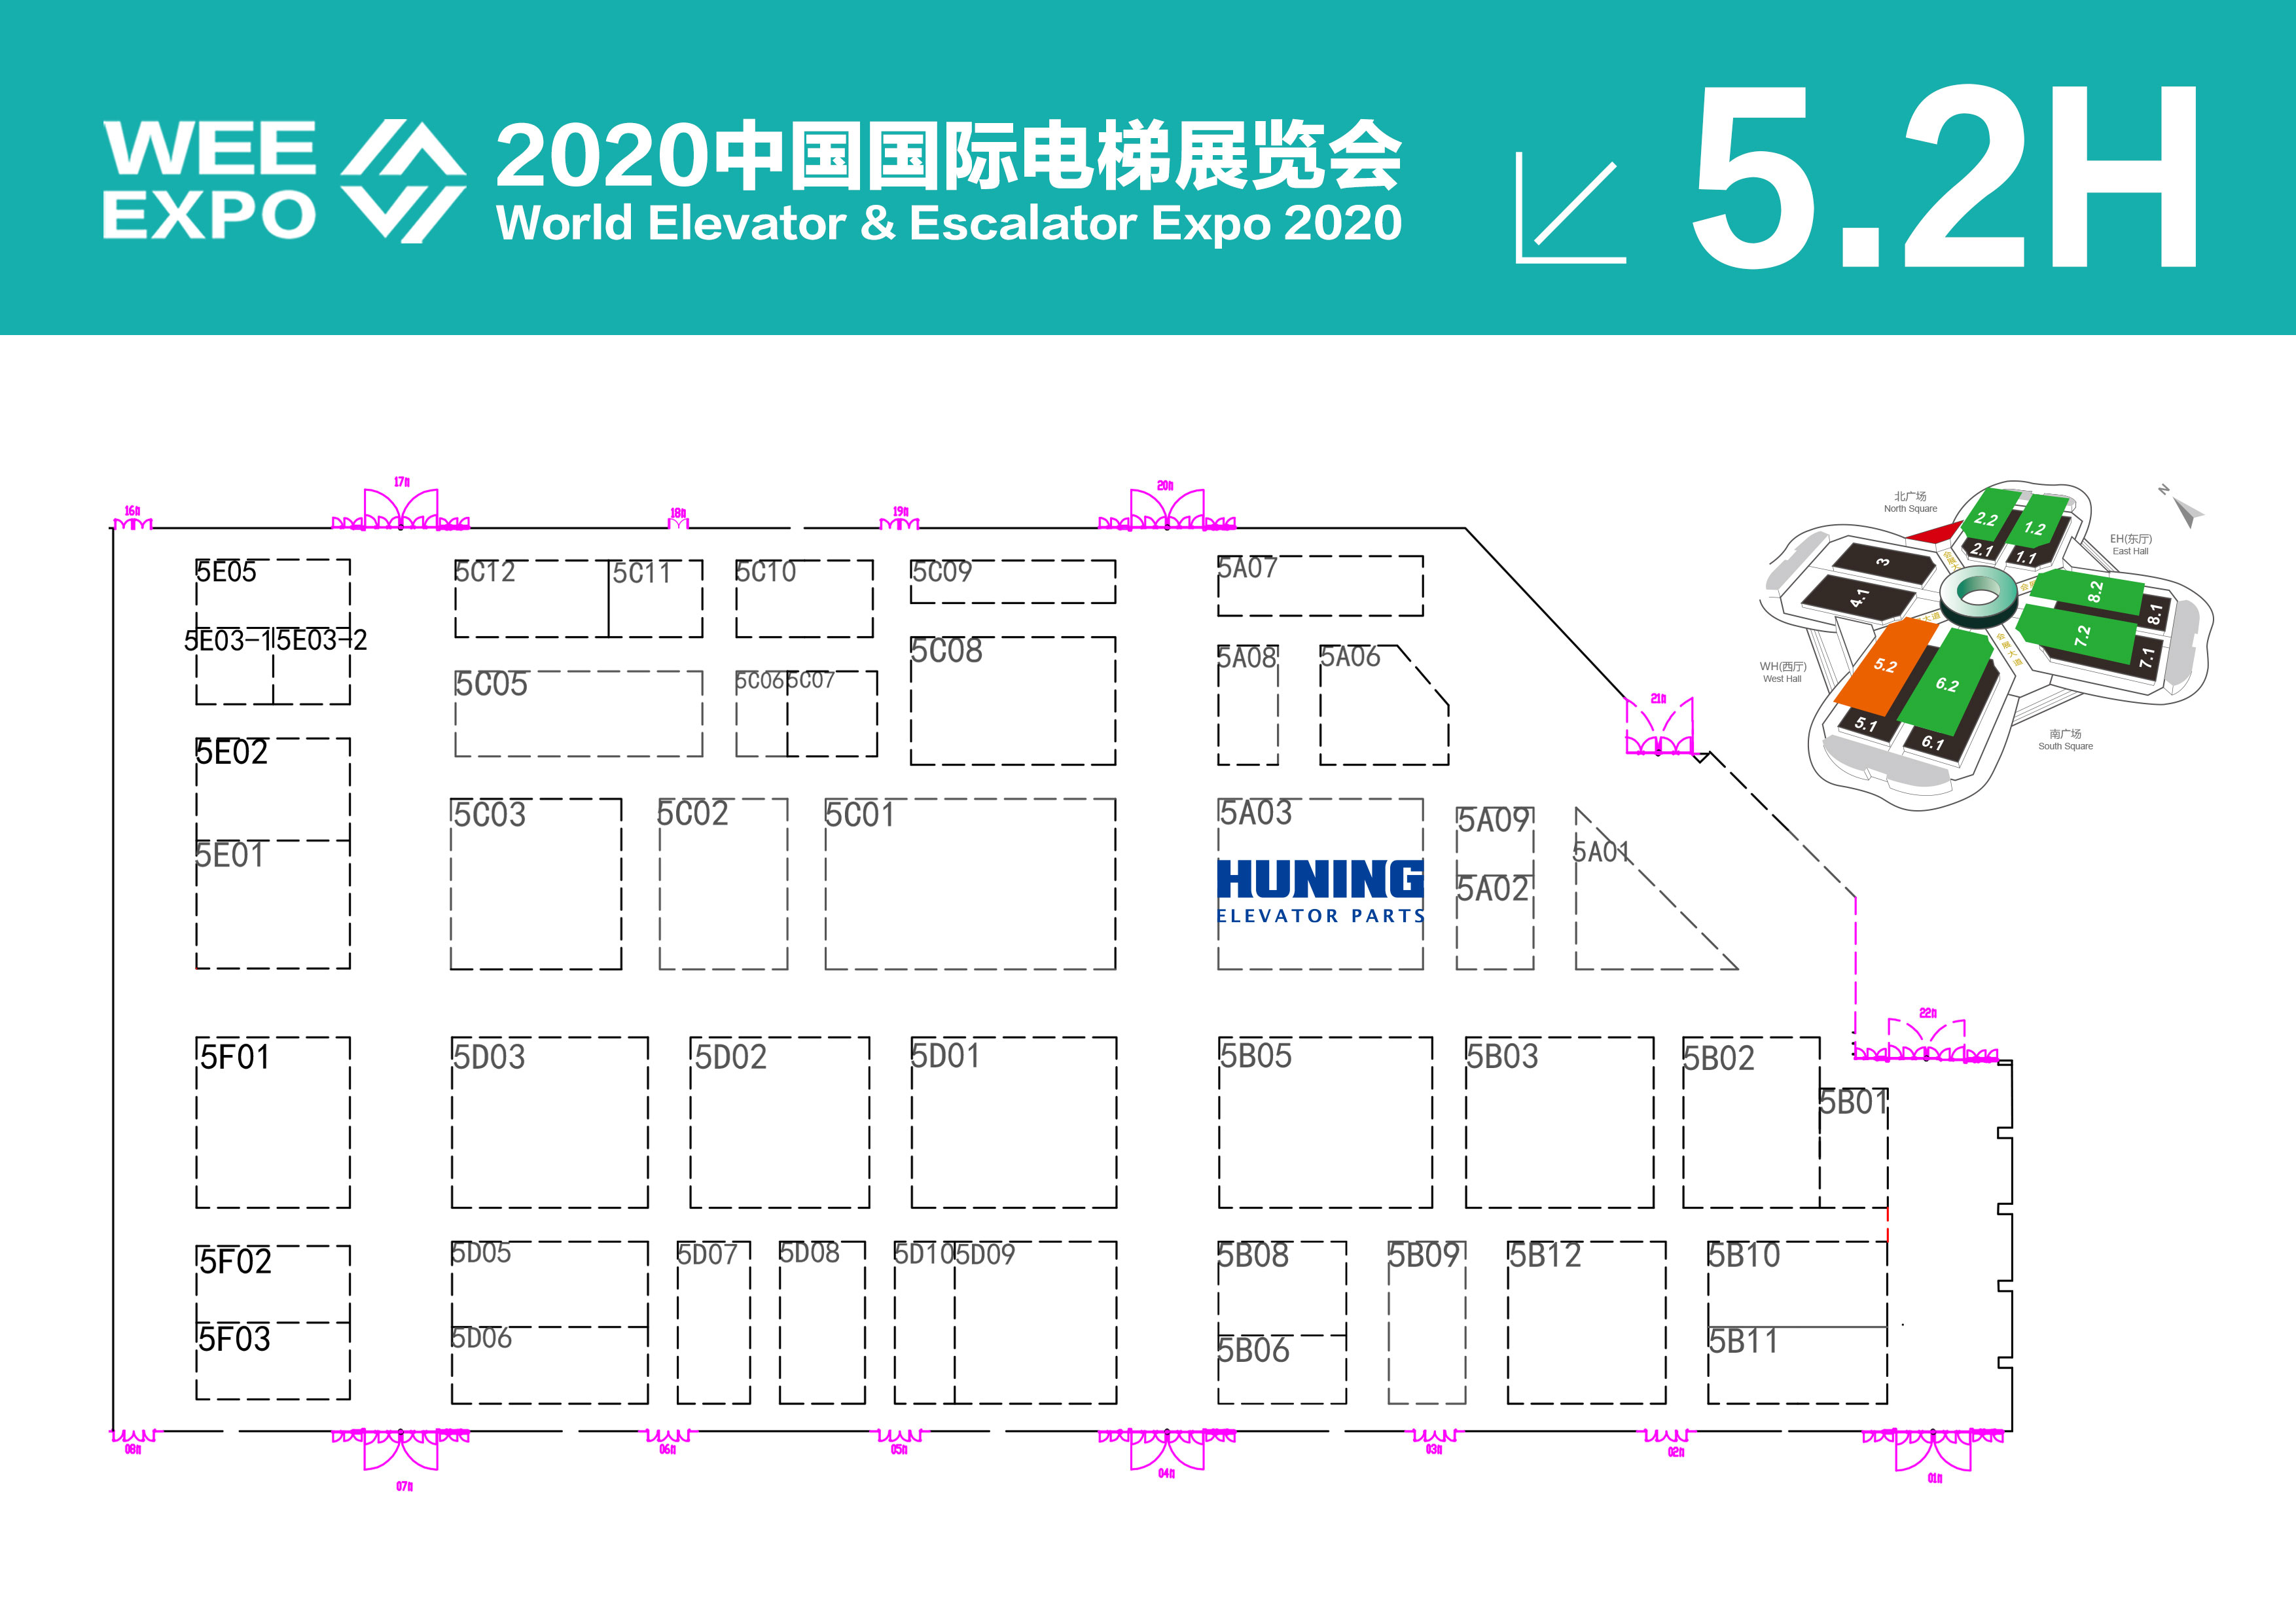 Huning shares participated in the 2020 China International Elevator Exhibition